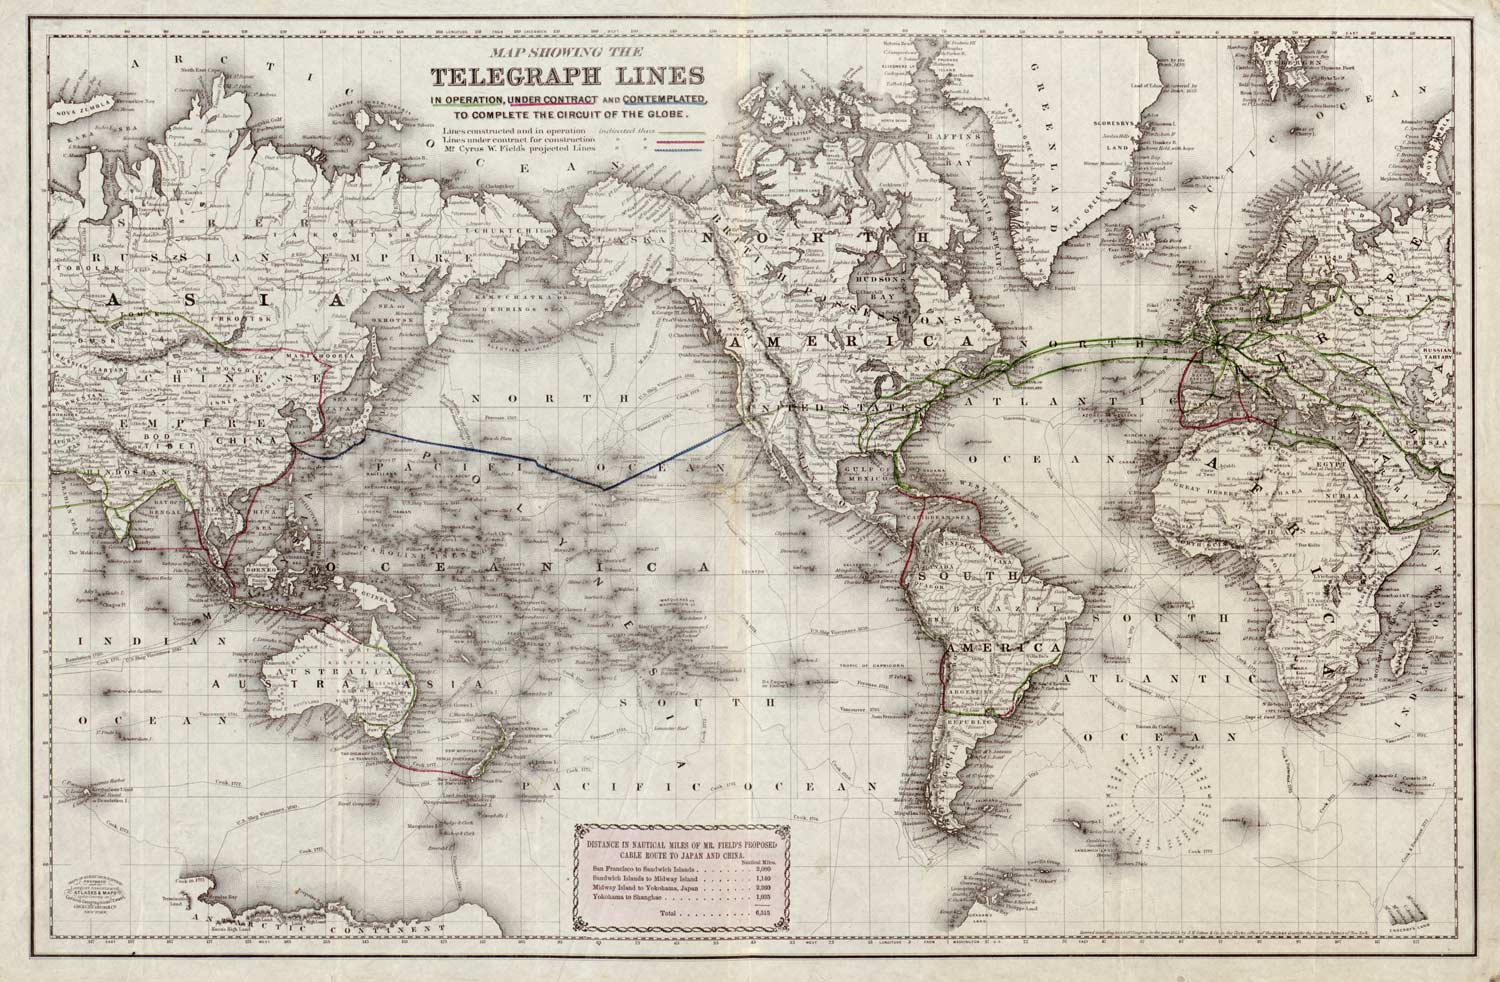 Bubnickcom Historic Undersea Cable Maps - Old world map black and white